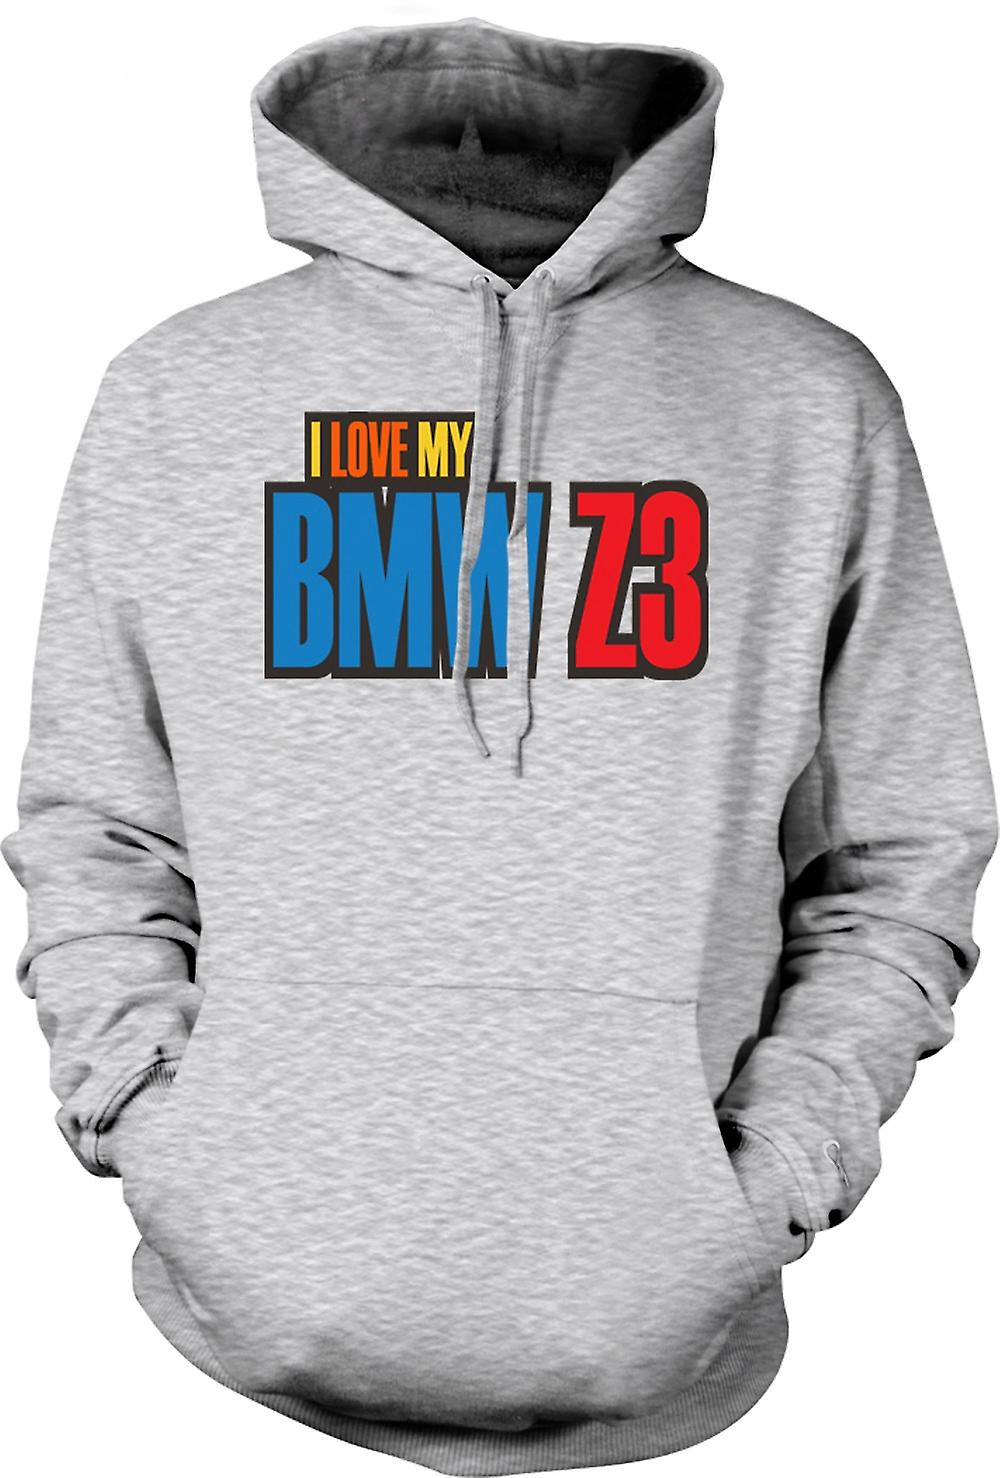 Mens Hoodie - I Love My BMW Z3 - Car Enthusiast